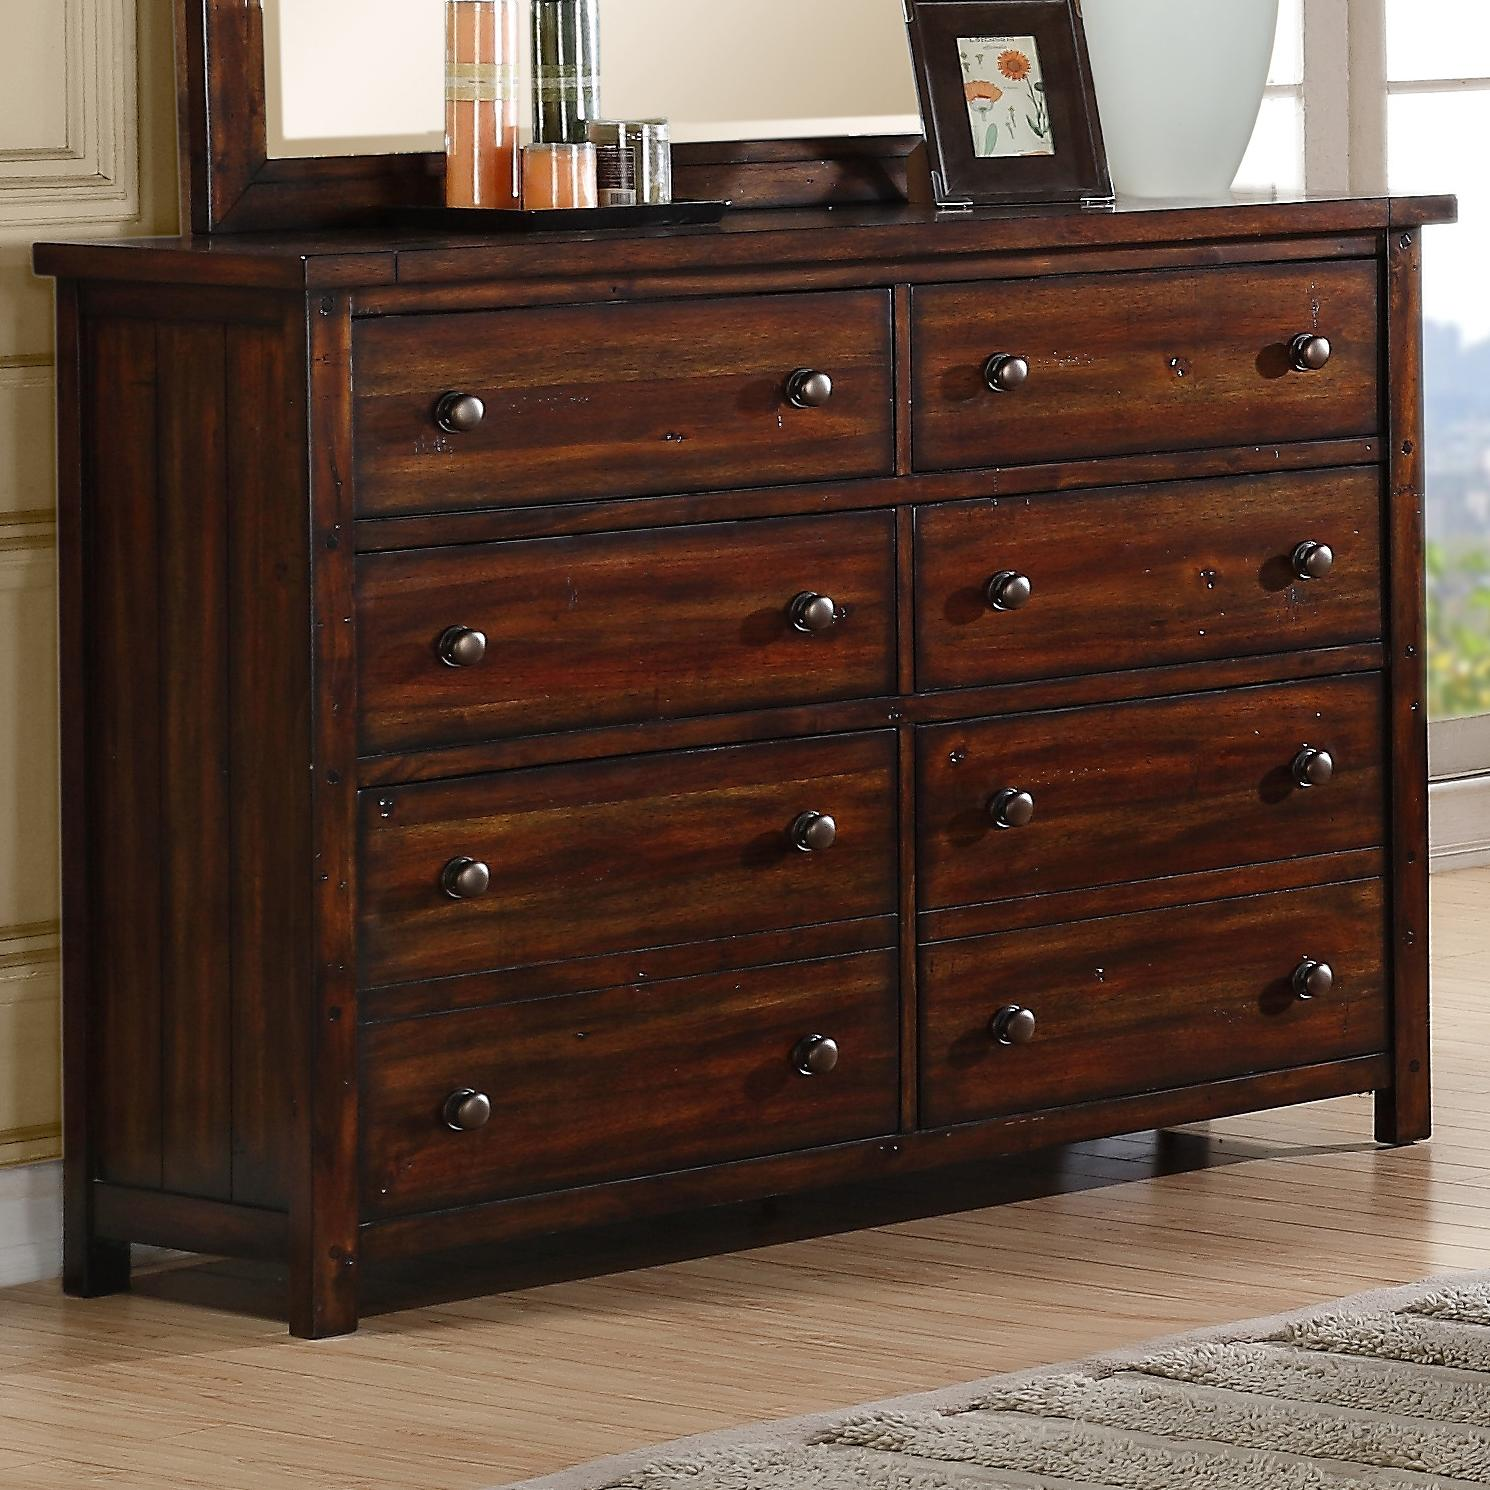 Elements International Boardwalk Dresser - Item Number: DS600DR